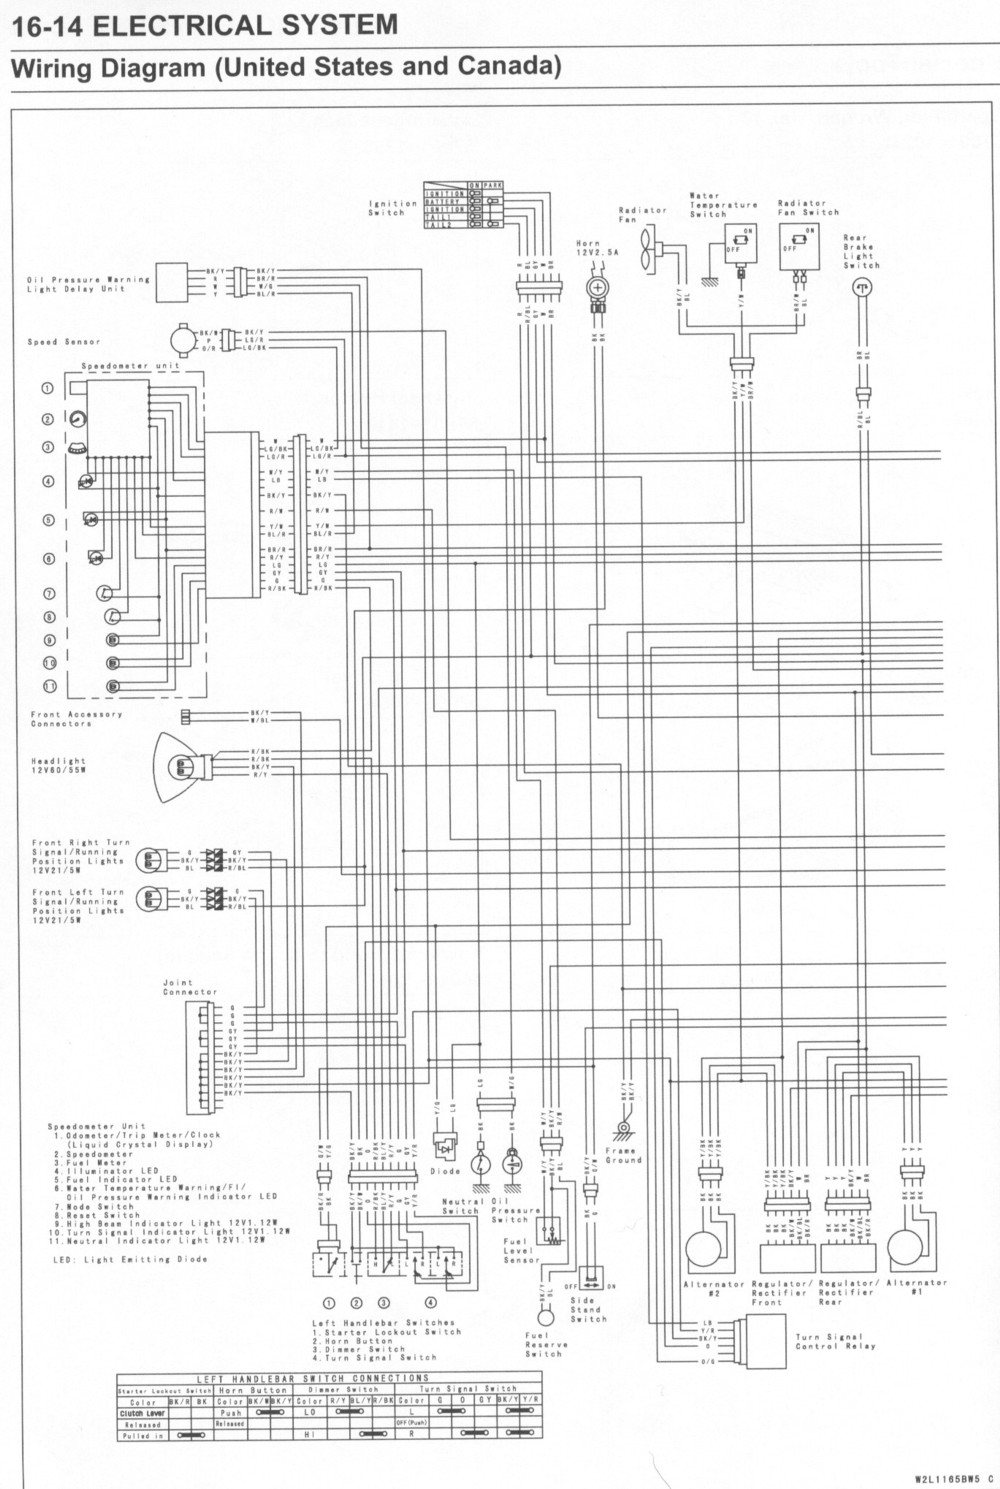 medium resolution of wiring diagram kawasaki vulcan 1500 wiring schematic data 2003 kawasaki vulcan 800 also kawasaki vulcan 1500 in addition diagram